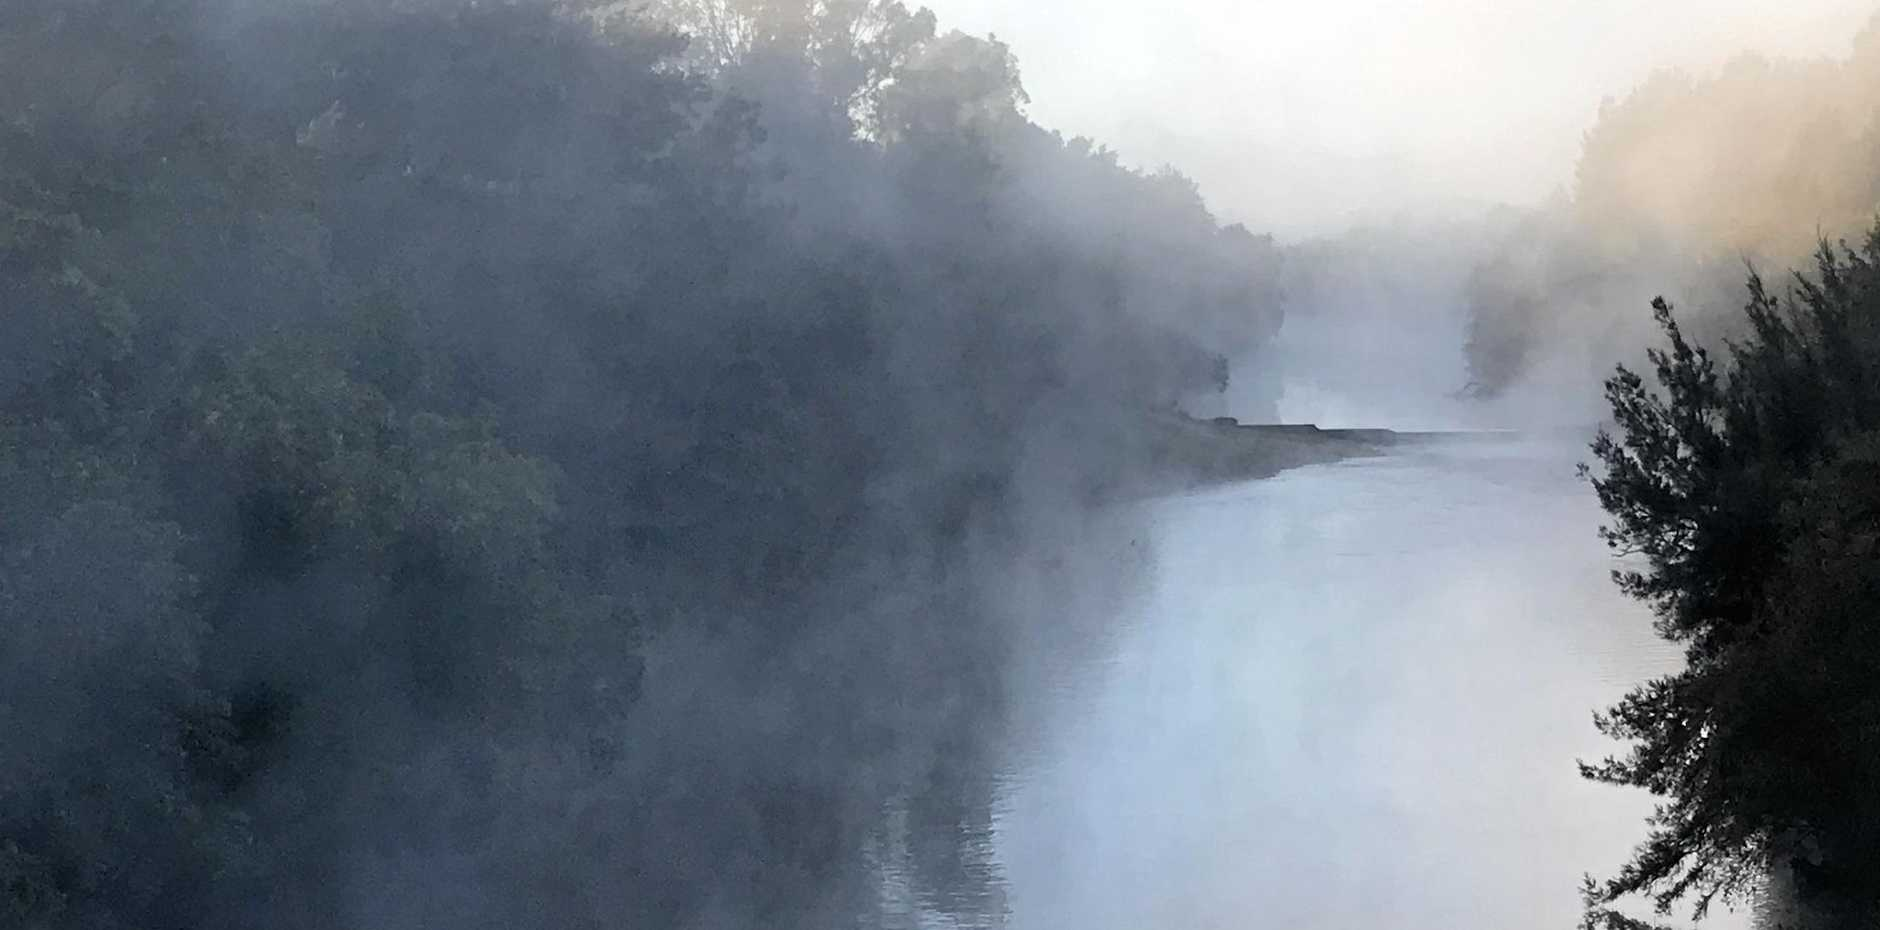 FREEEZING MORNING: Gympie residents awoke to a blanket of fog as temperatures dropped below 2C. This photo was taken over Kidd Bridge just after 6.30am.